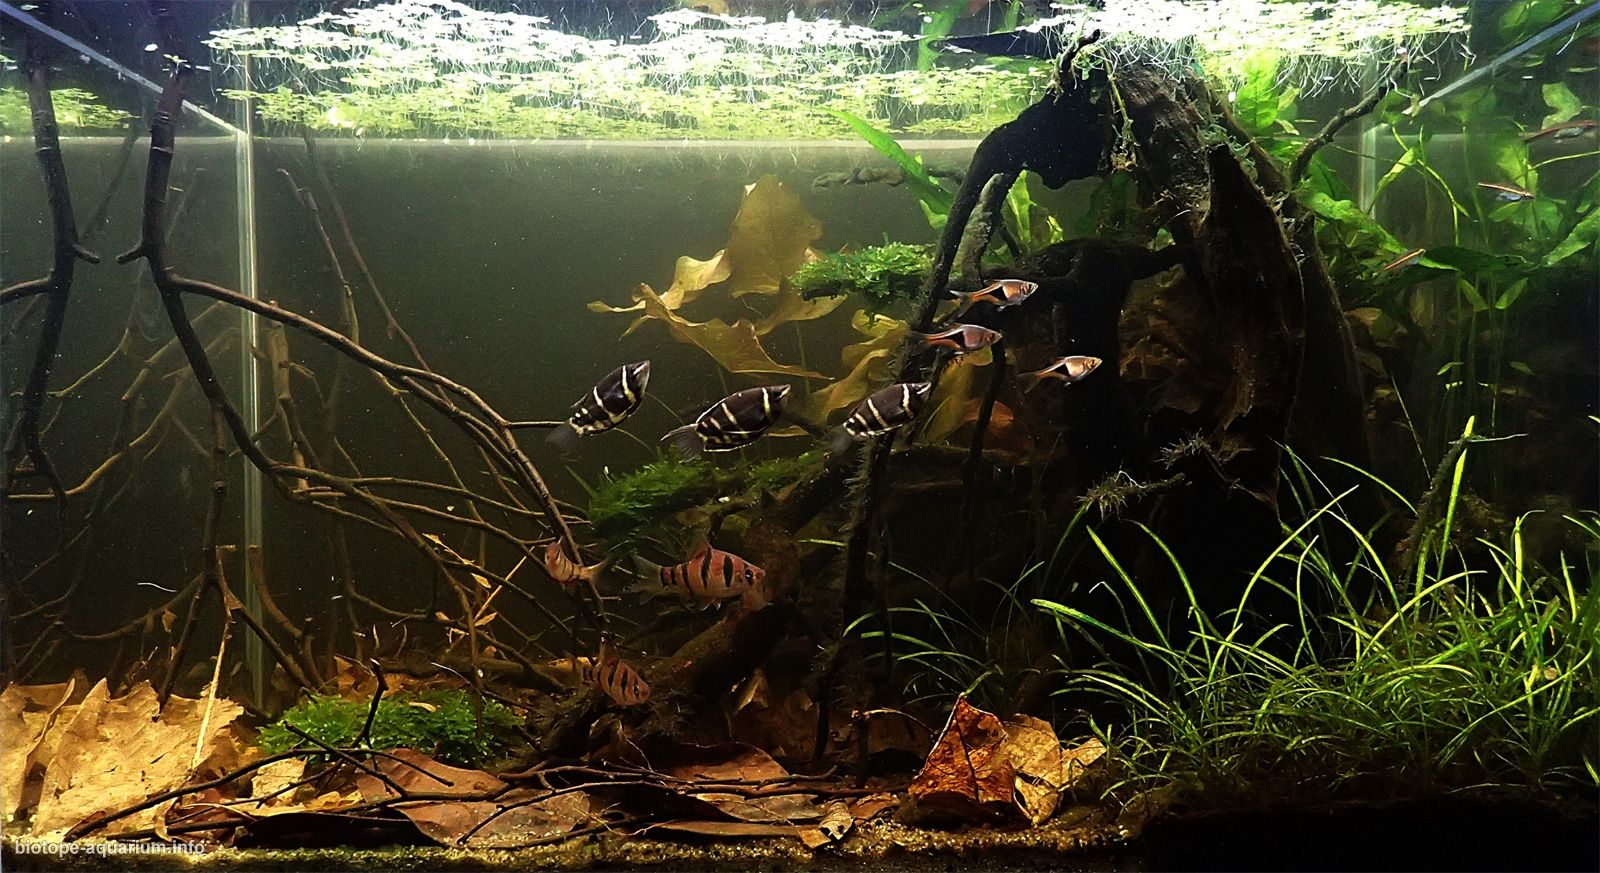 Peat Swamp Forest In The Central West Of Peninsular Malaysia 60 L Biotope Aquarium Biotope Aquarium Aquascape Aquarium Live Aquarium Plants